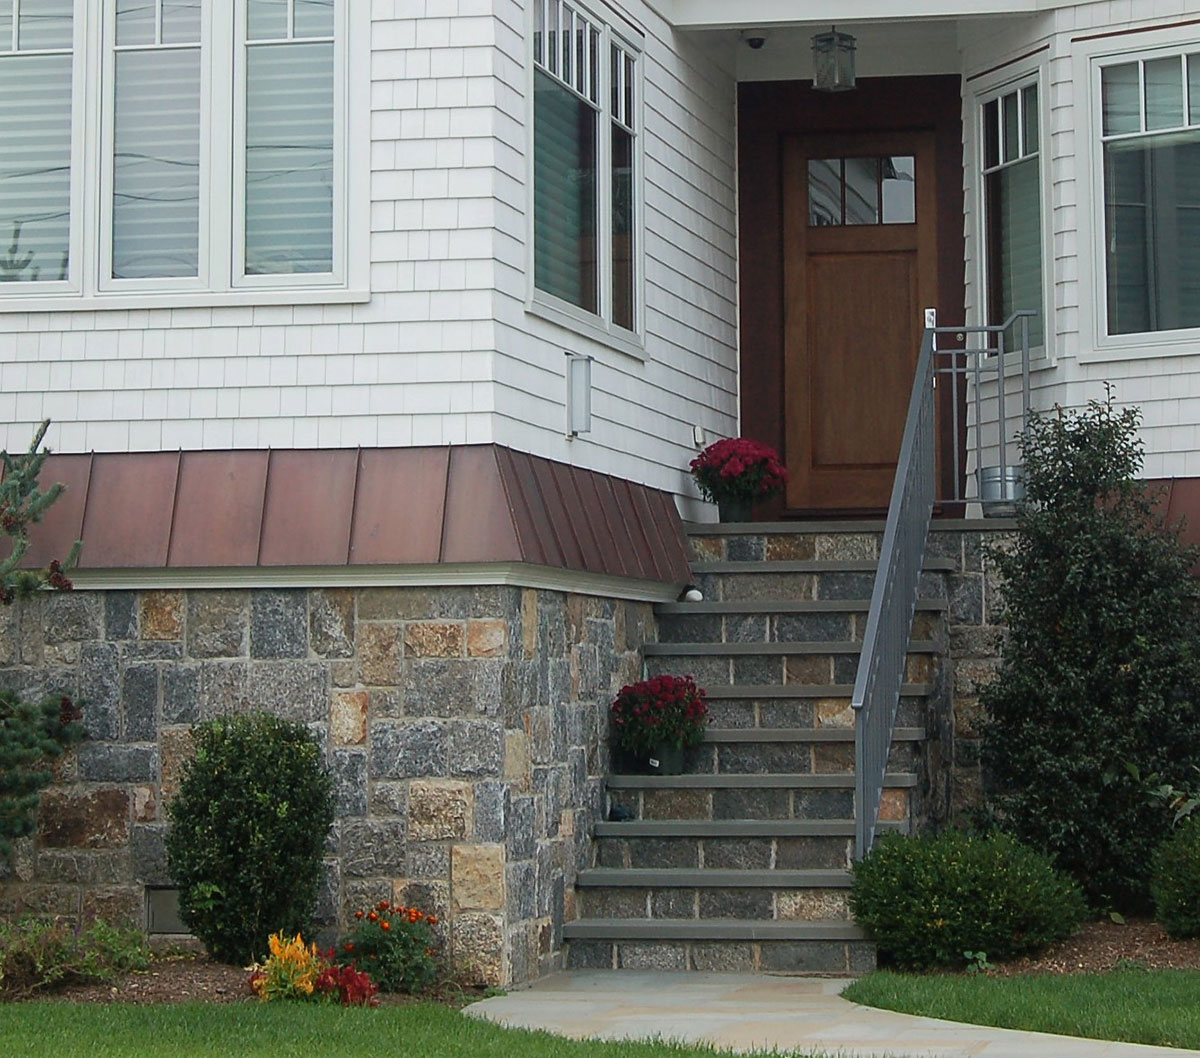 Exterior stone half wall and stairs